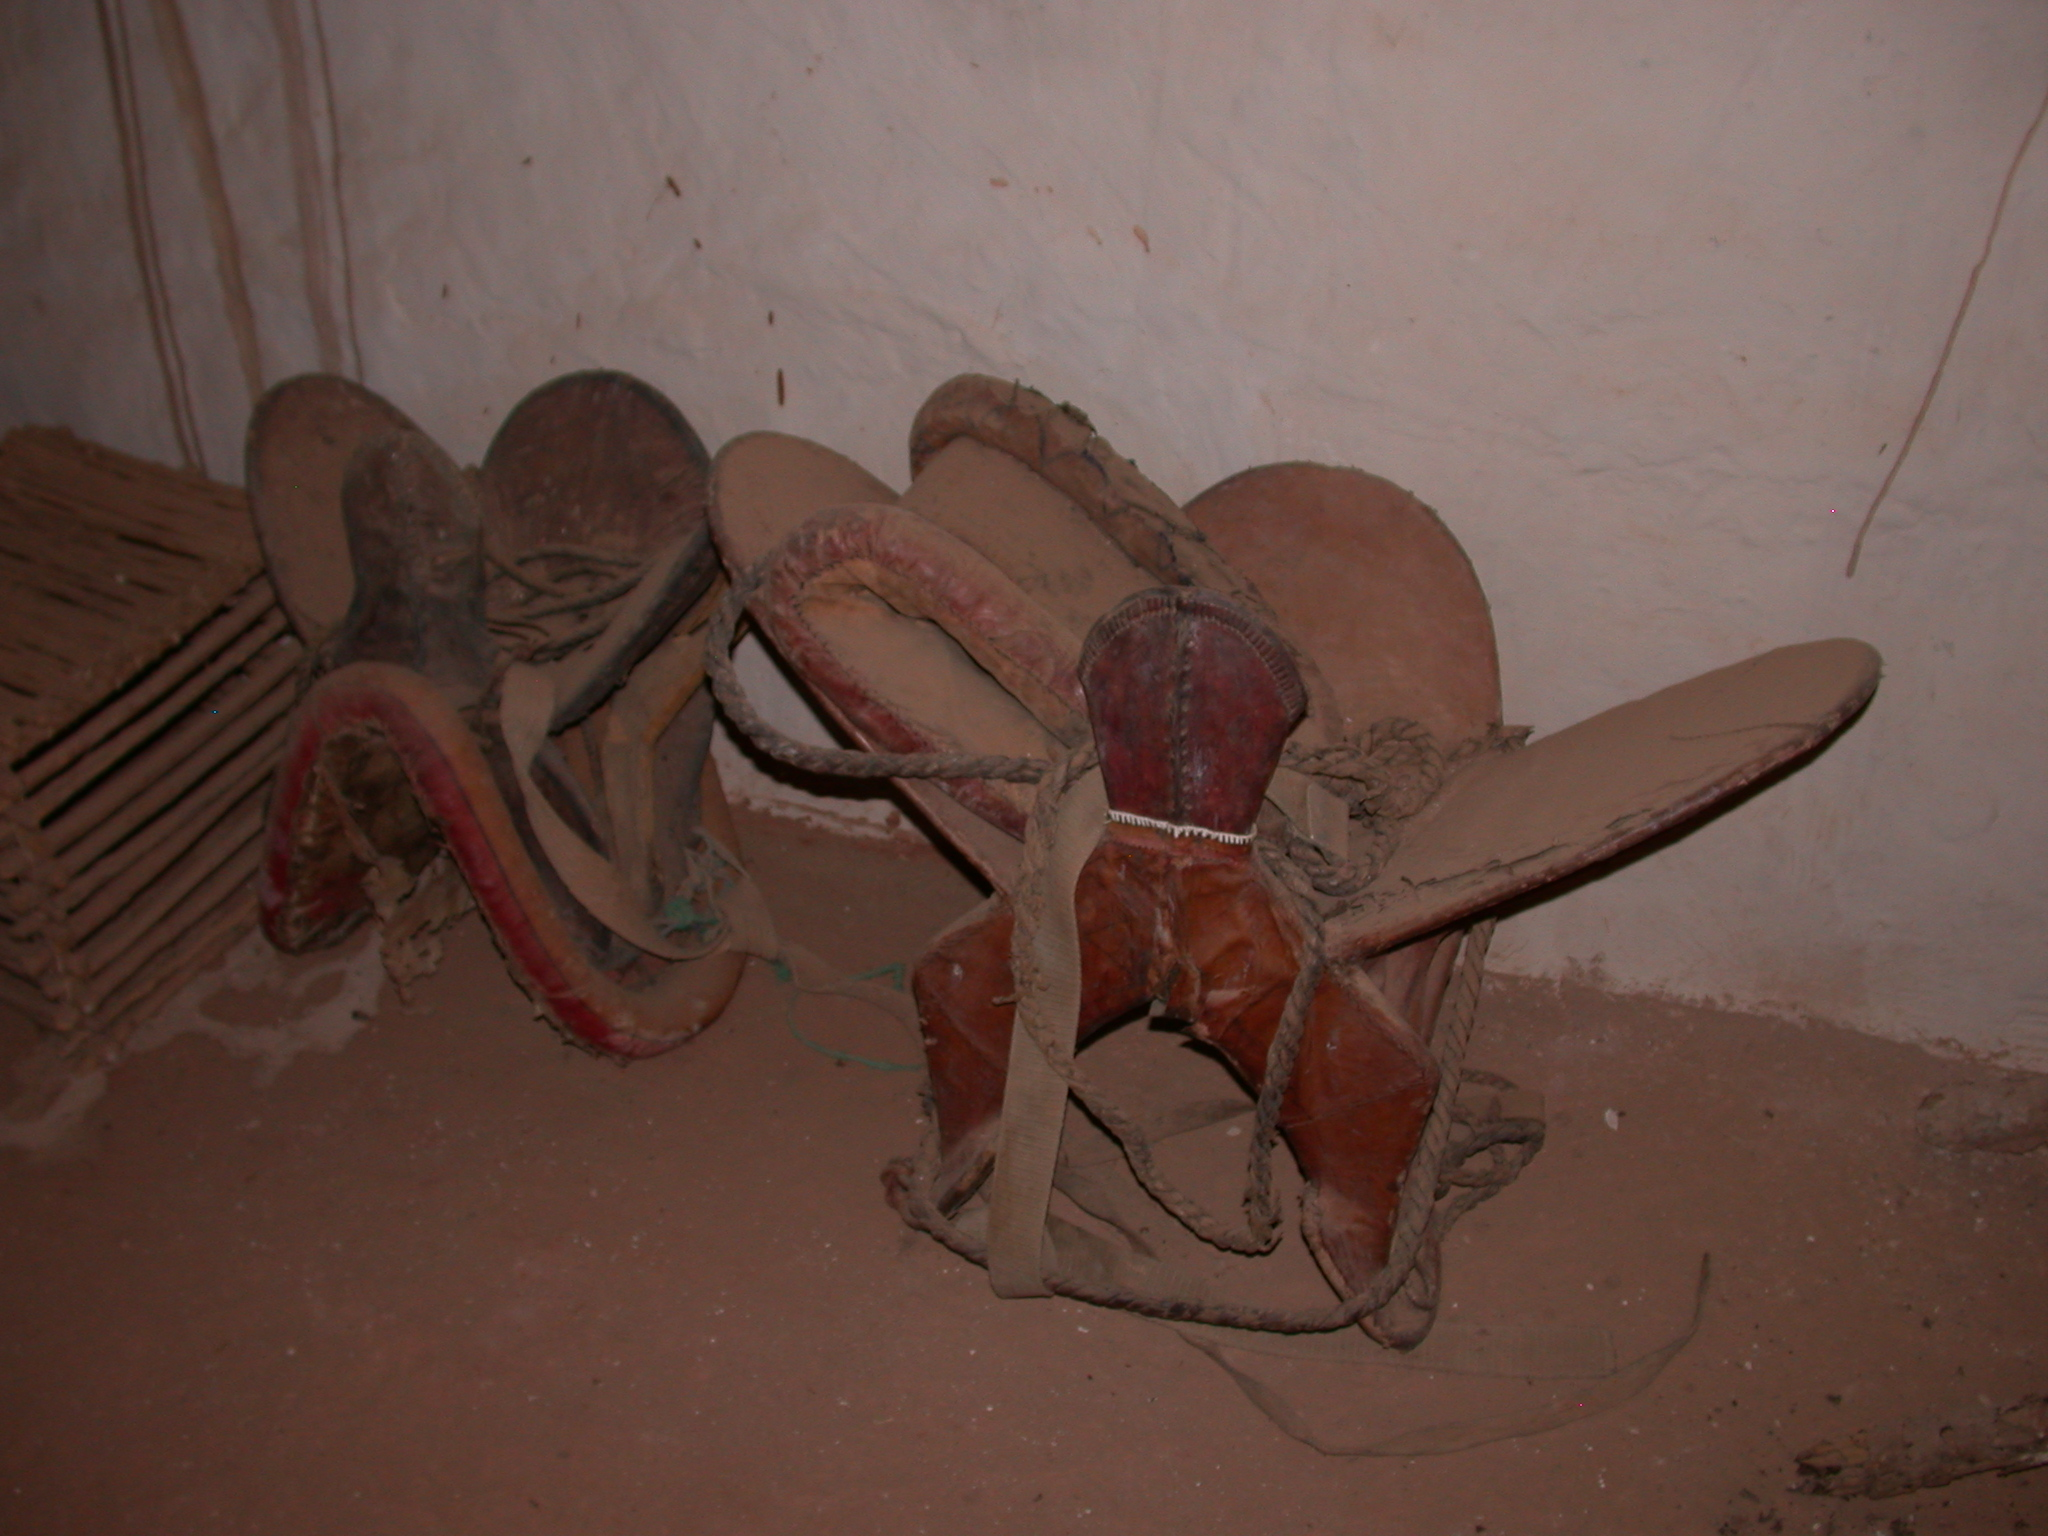 Traditional Camel Saddles at Museum in Ancient City of Oulata, Mauritania